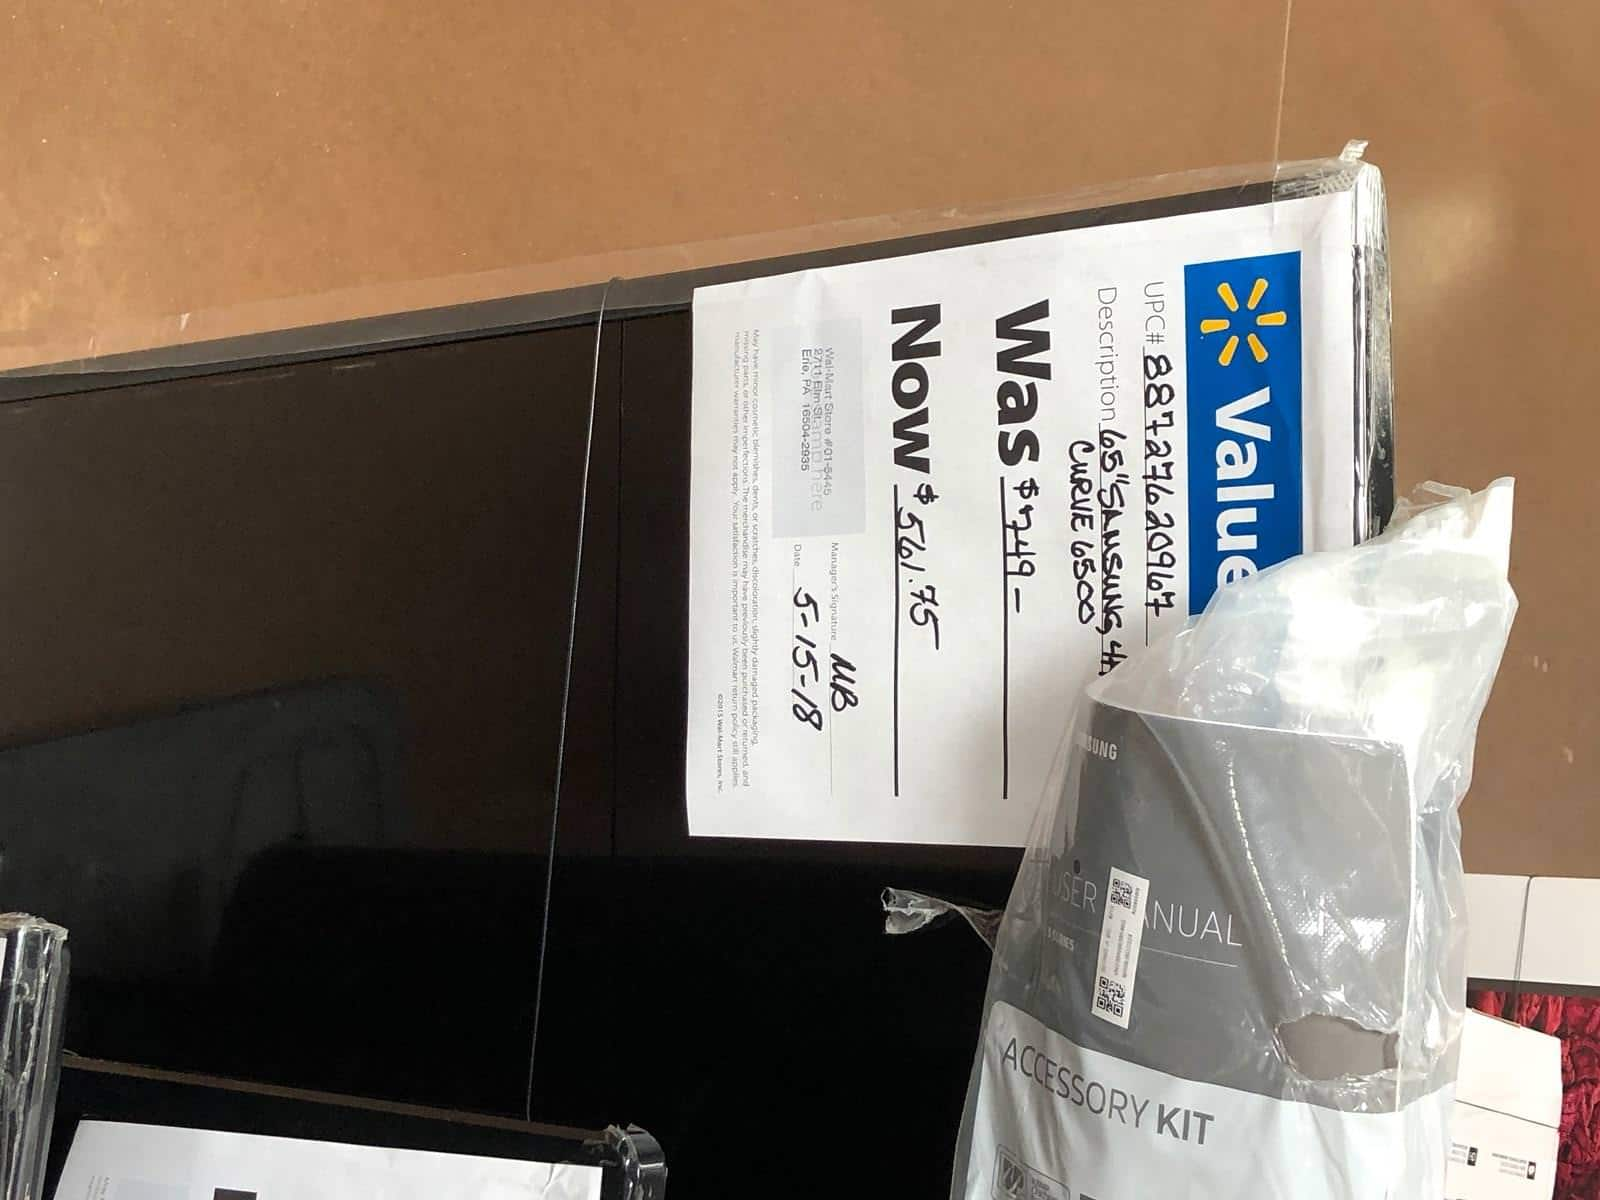 "YMMV - Samsung 65"" Curved 4k LED & Other Floor Models TVs on Clearance At Walmart $561.75"